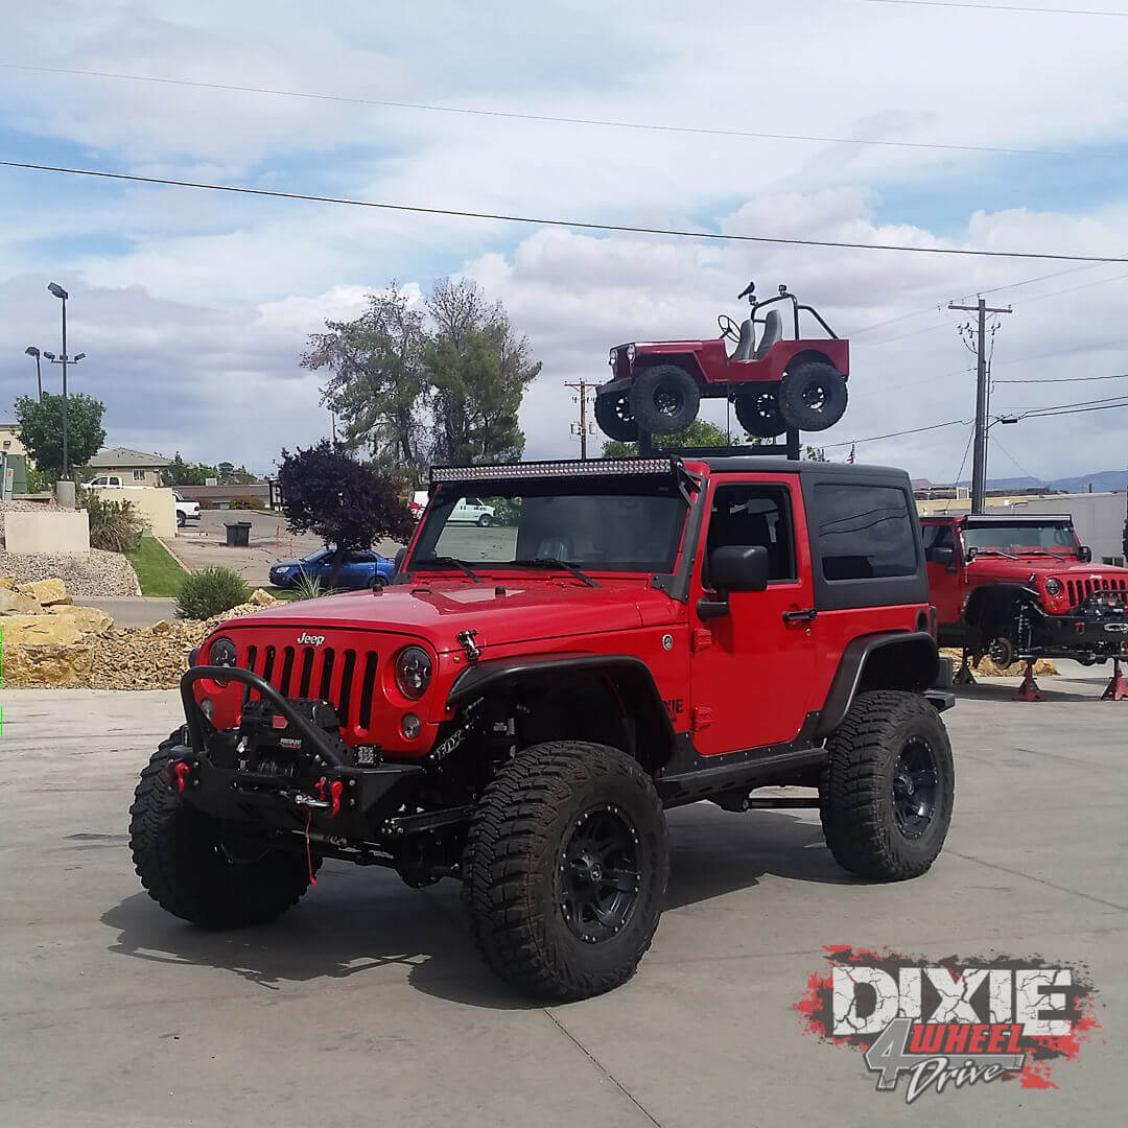 Adams Auto Sales >> 2007 Jeep JK sport PreRunner | Dixie 4 Wheel Drive